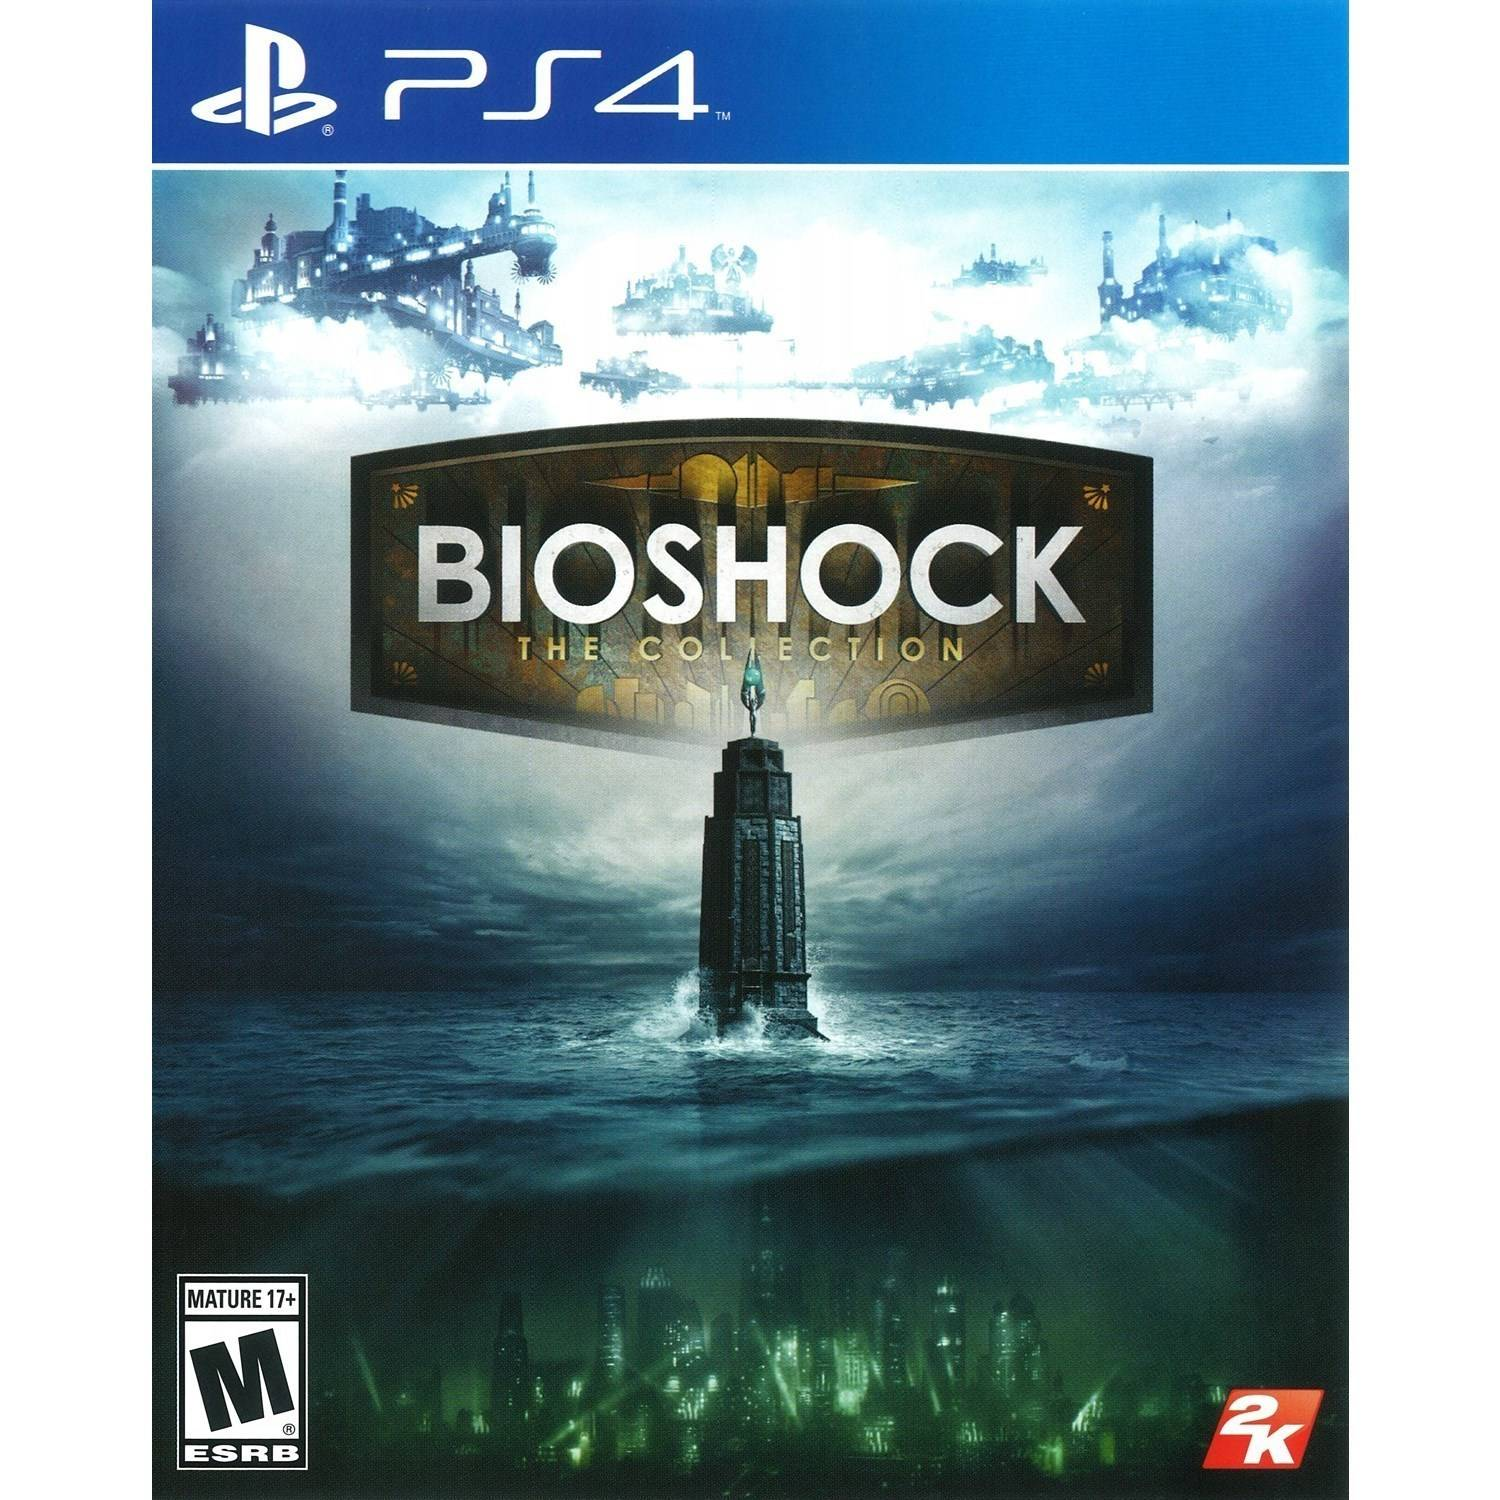 Bioshock: The Collection (Pre-Owned), 2K, PlayStation 4, 886162559309